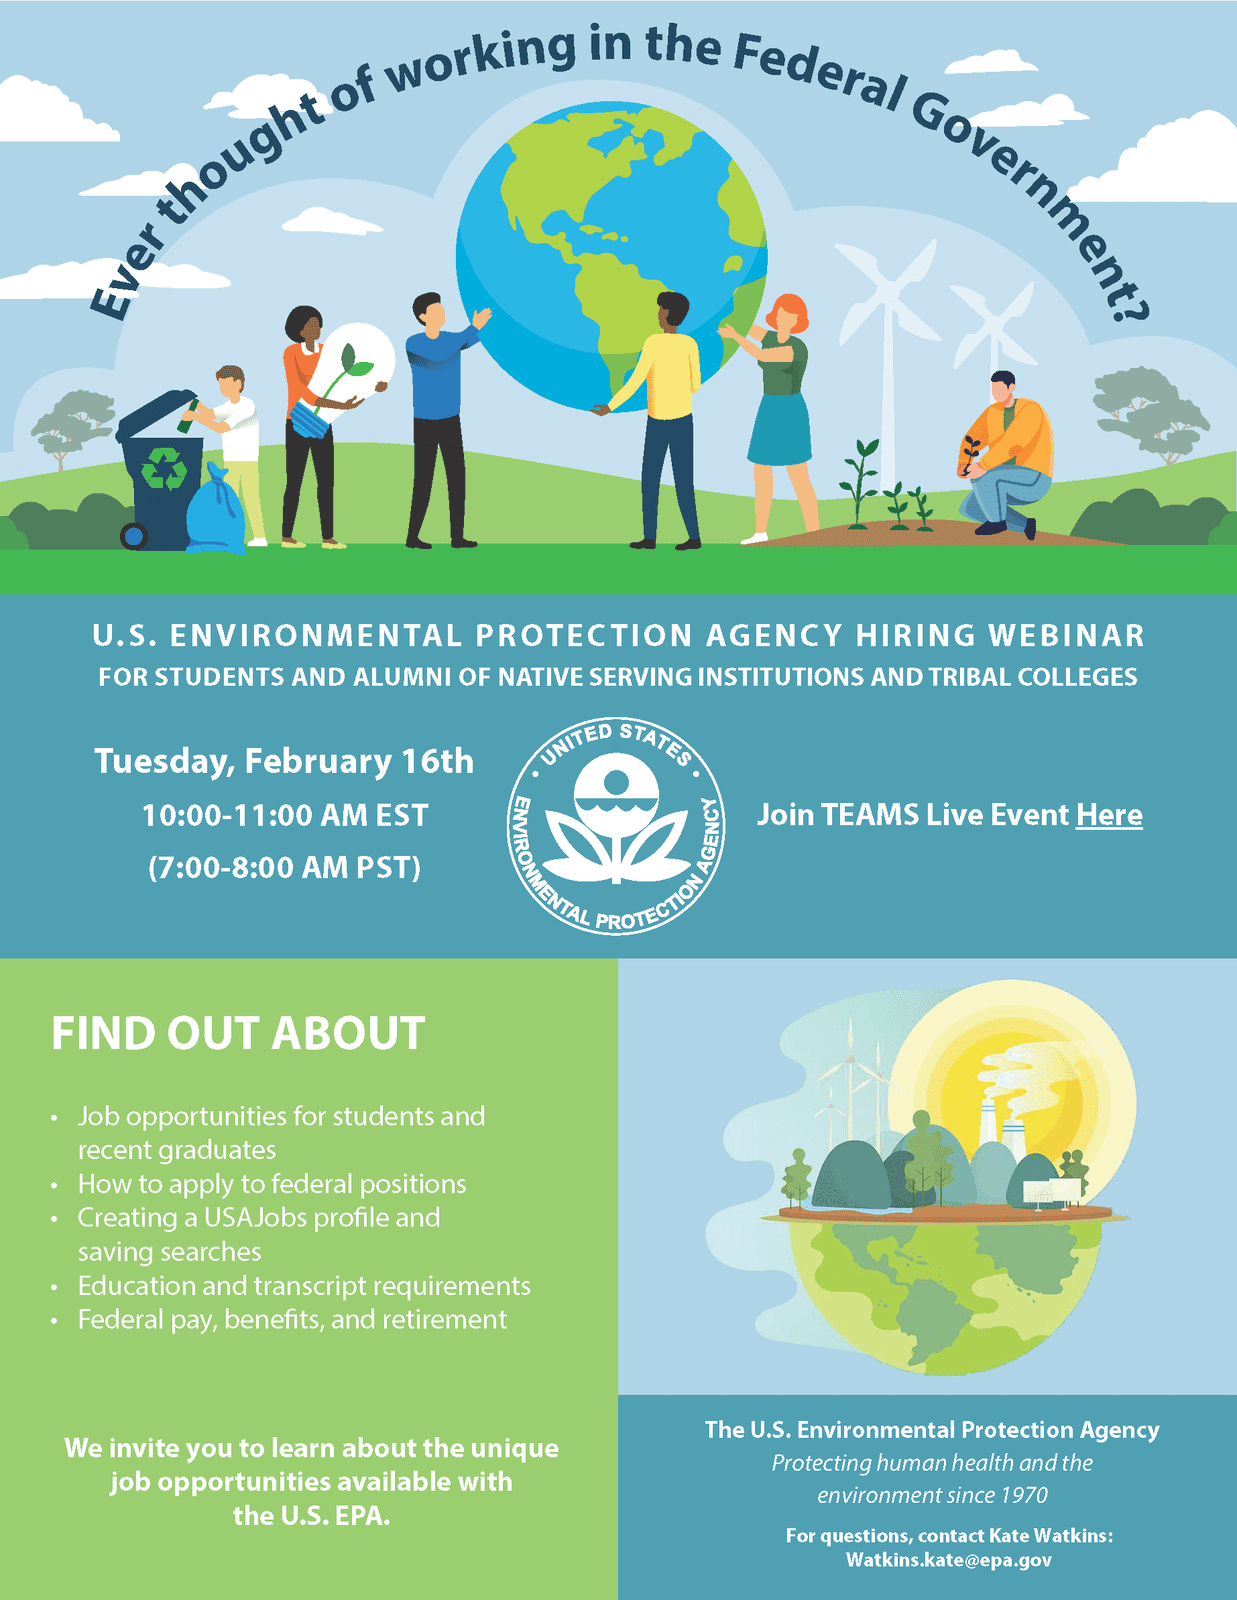 Announcement: U.S. Environmental Protection Agency Hiring Webinar for students and alumni of NSIs